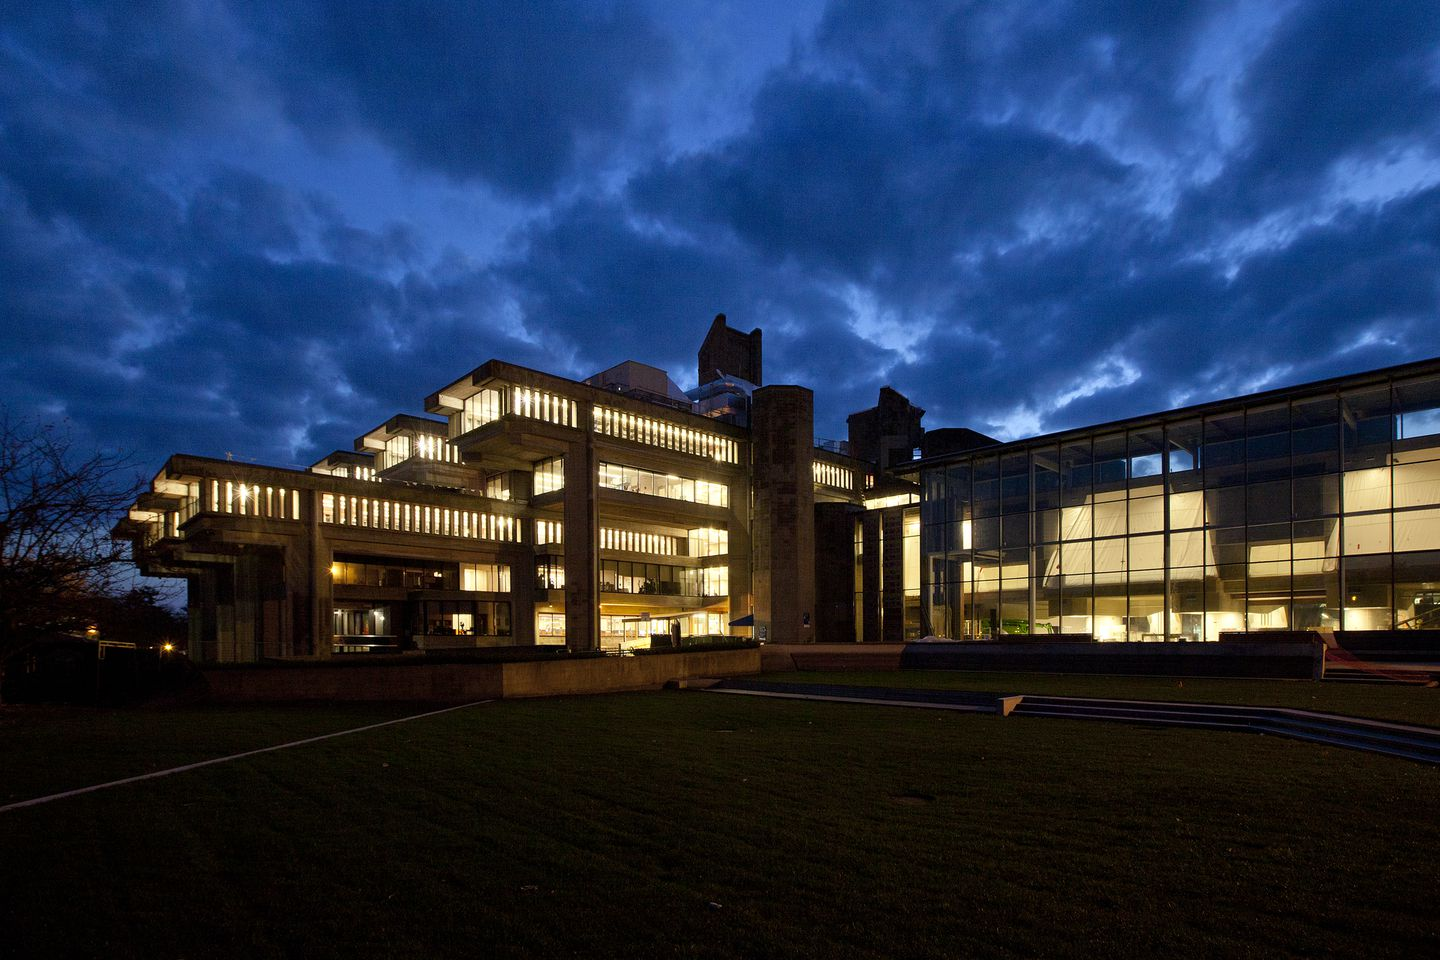 Paul Rudolph S Brutalism Reworked At Umass Dartmouth The Boston Globe